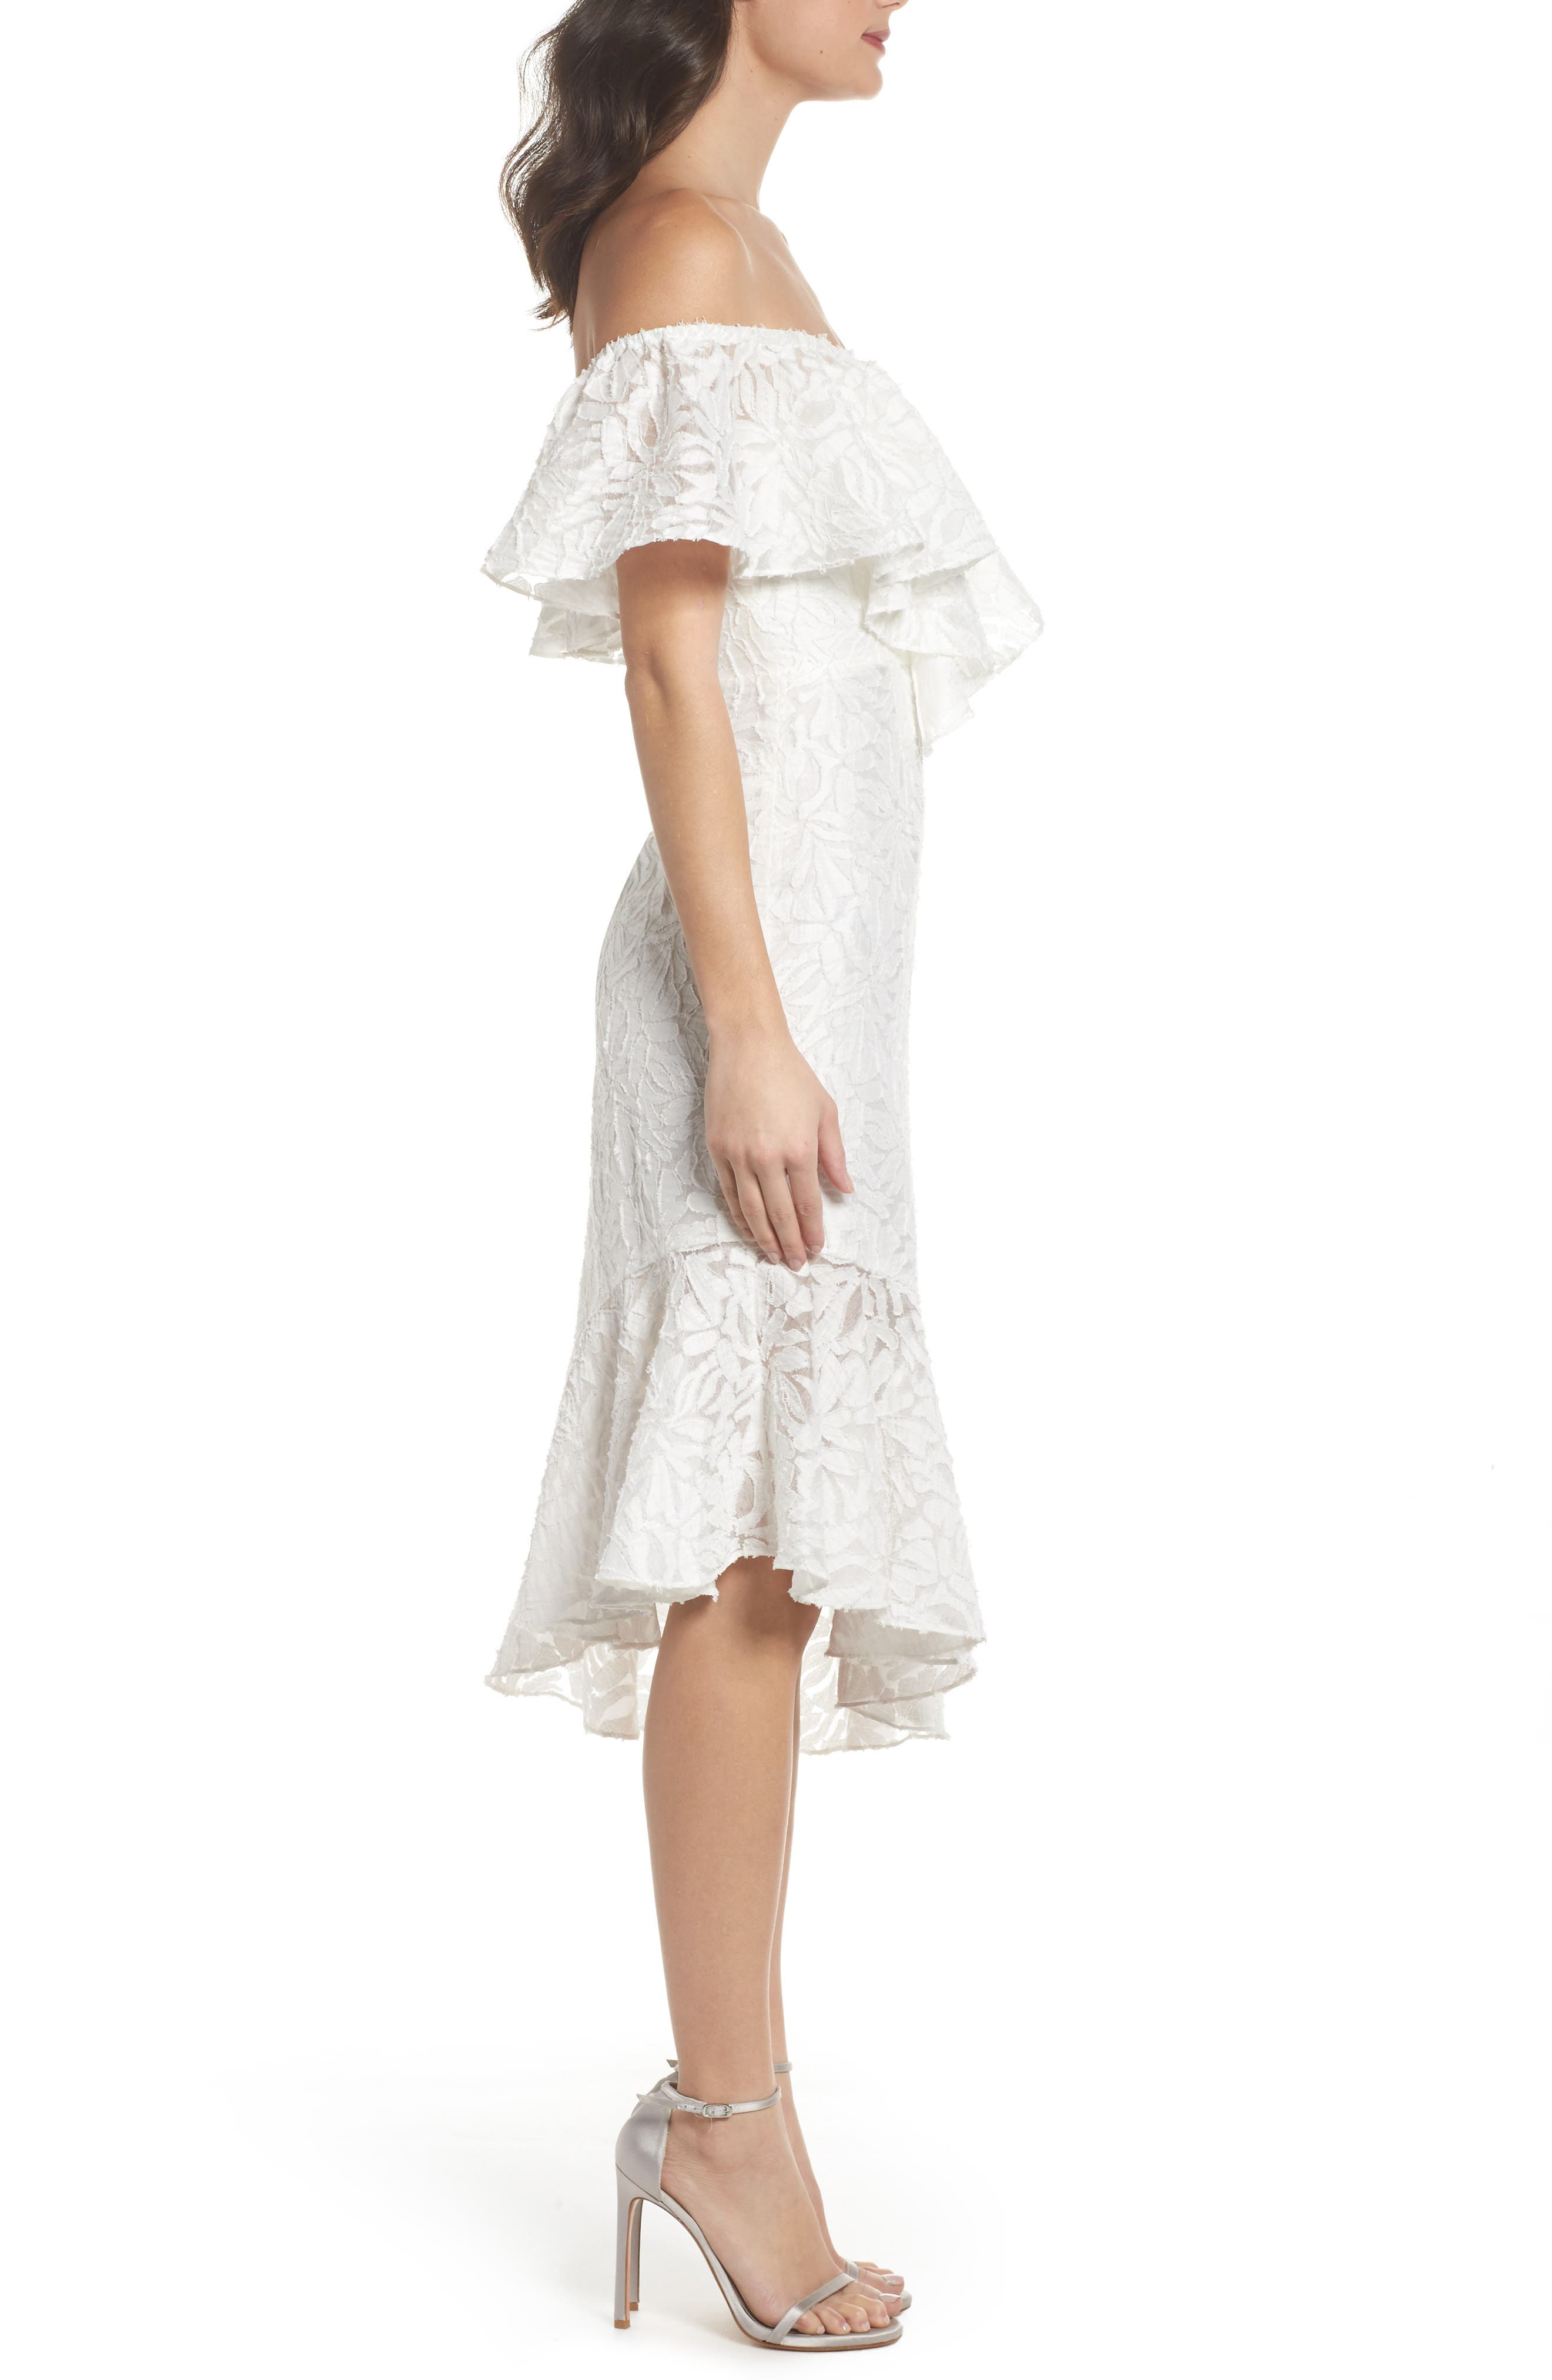 C/MEO More to Give Off the Shoulder Midi Dress,                             Alternate thumbnail 3, color,                             900